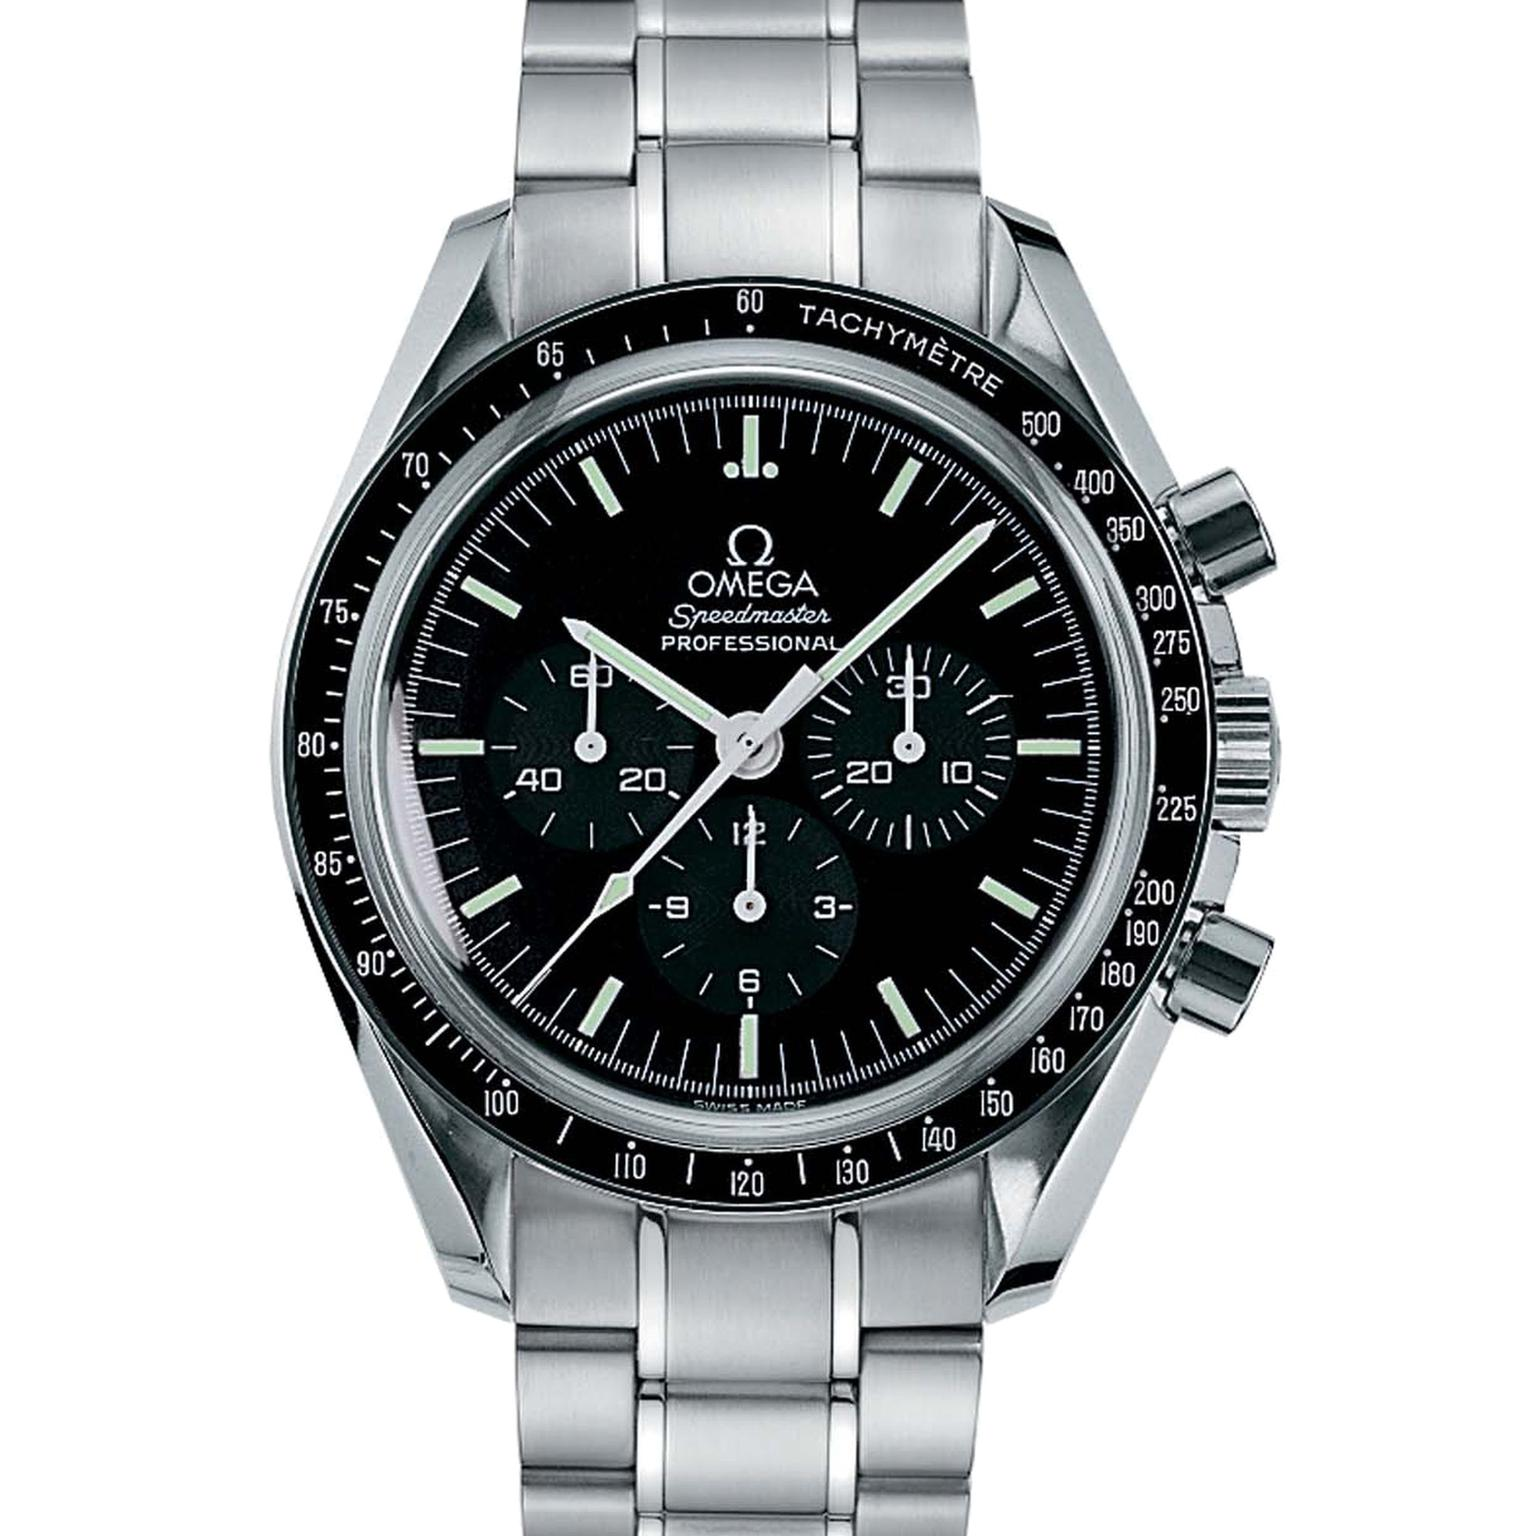 The Omega watches Speedmaster Professional was the first timepiece to accompany astronaut Buzz Aldrin on his epic Moon walk in July 1969. The 42mm stainless steel chronograph - known as the Moonwatch - is immediately recognisable with its black dial, tach